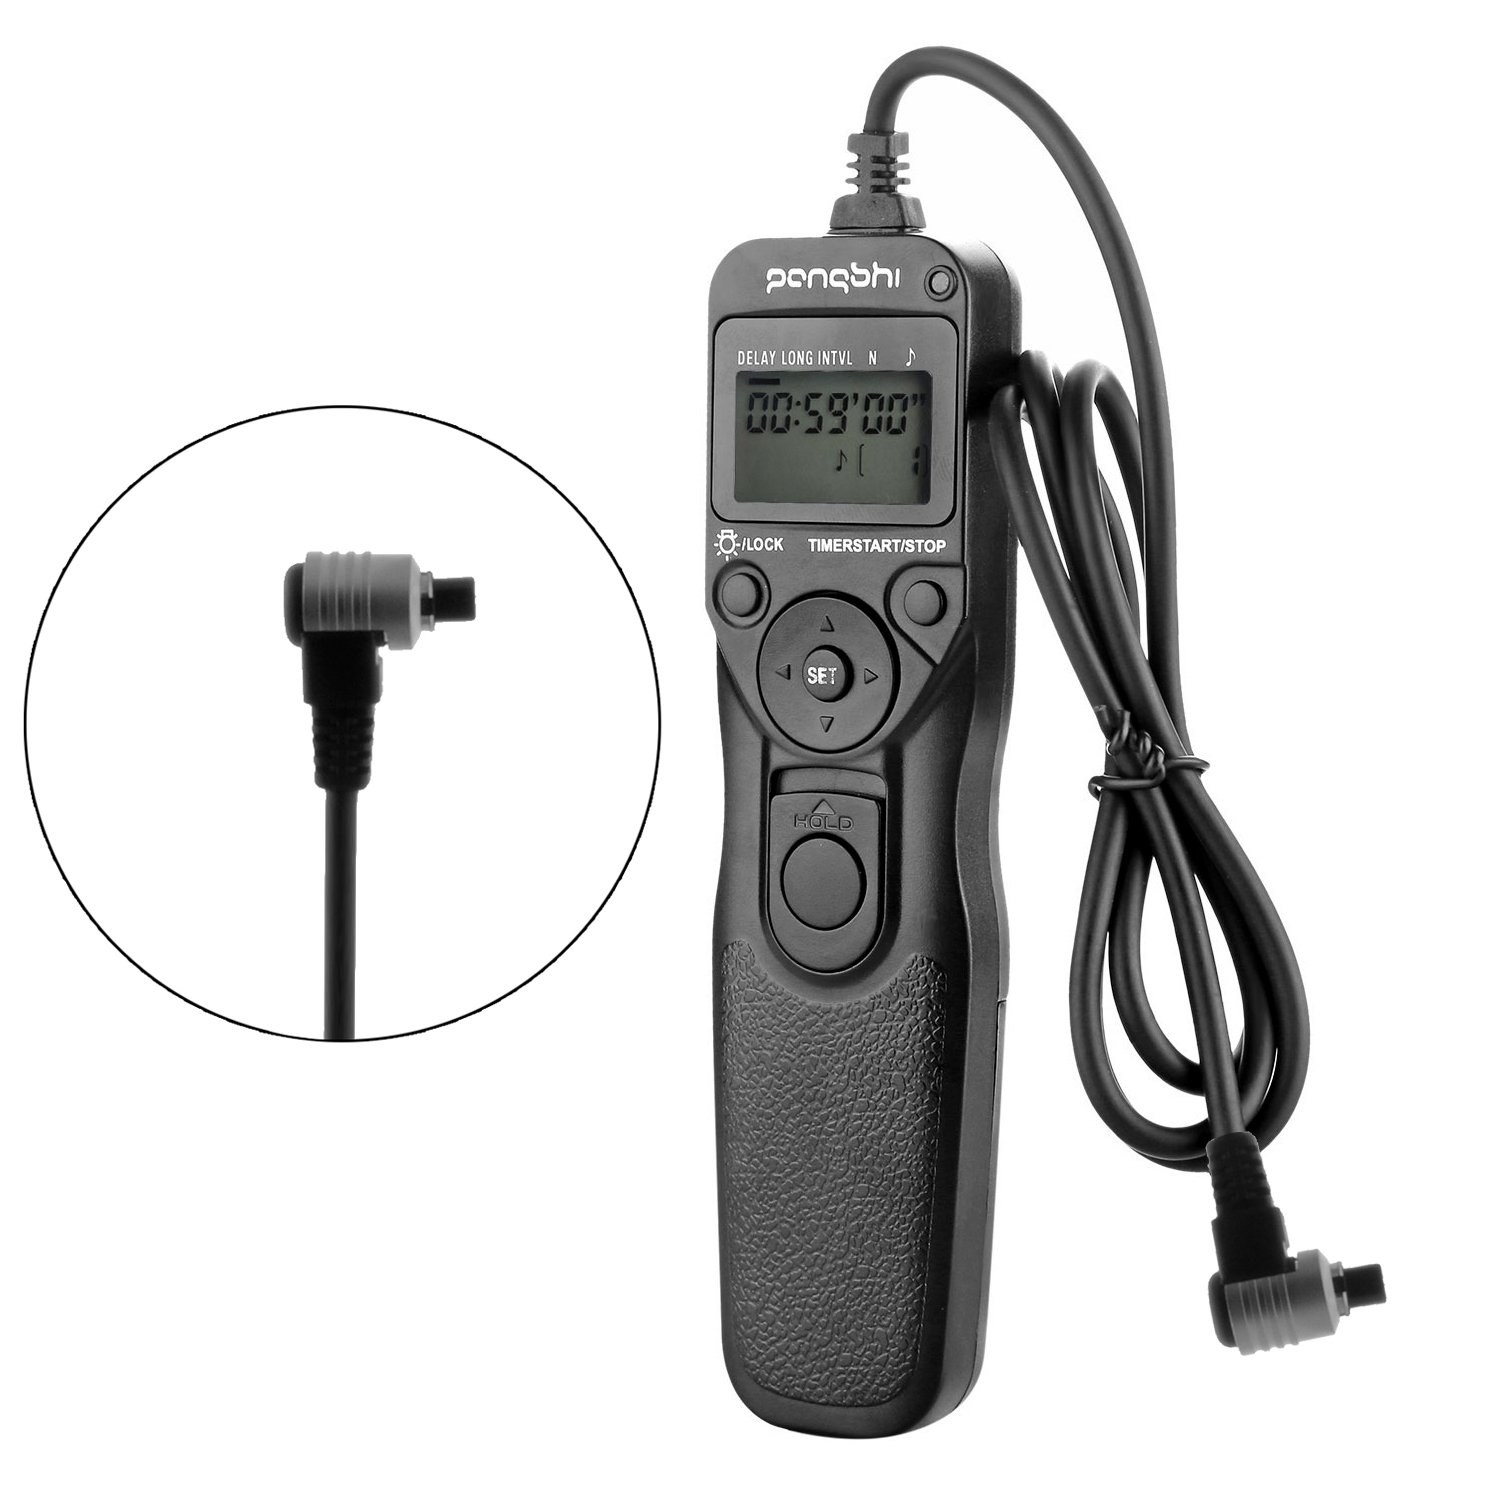 Portable Wired Timer Shutter Remote Release Control Cable Cord RS-80N3 for for Canon EOS-1V/1VHS EOS-3 EOS D2000 D30 D60 1D 1Ds 1D Mark II/III/IV 5D Mark II 5DS EOS-10D 20D 20Da 30D 40D 50D 5D 7D